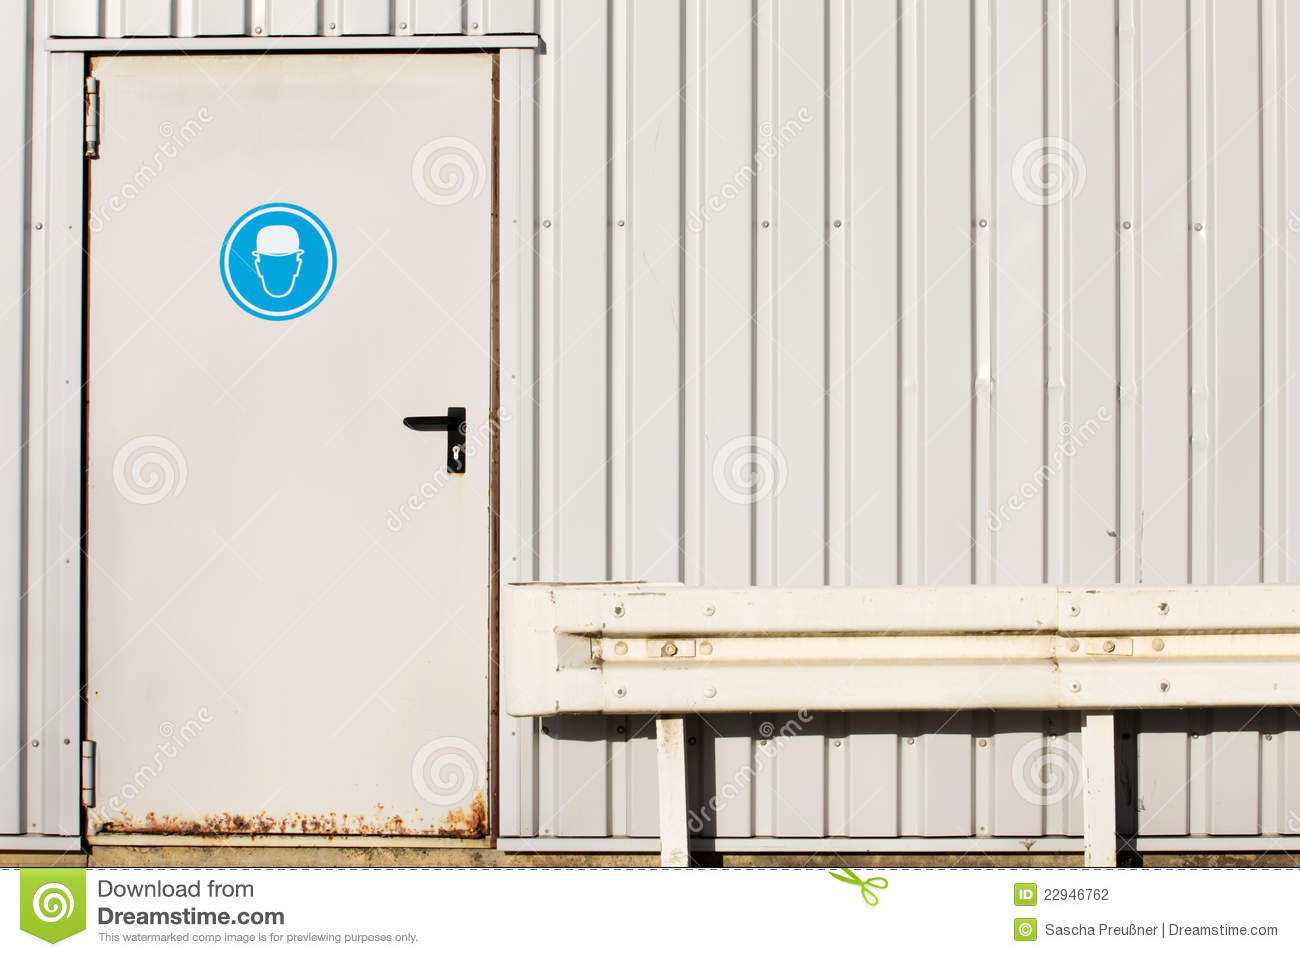 Superior Royalty Free Stock Photo. Download Factory Door ...